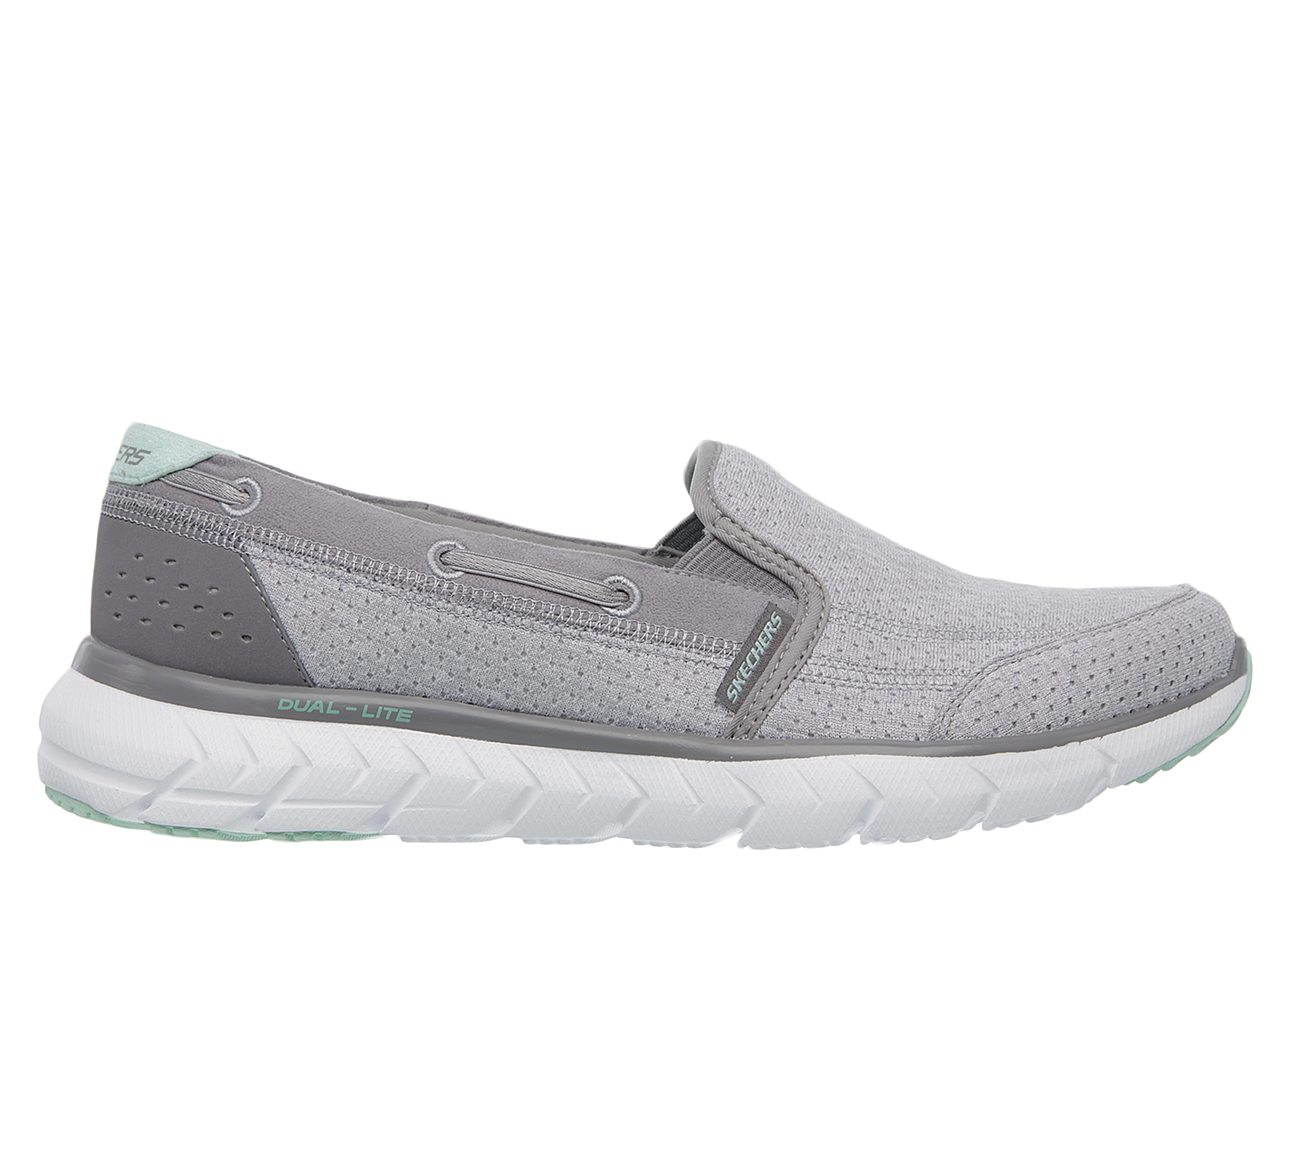 Skechers NV - - GRY°gray 2PoUwvt,